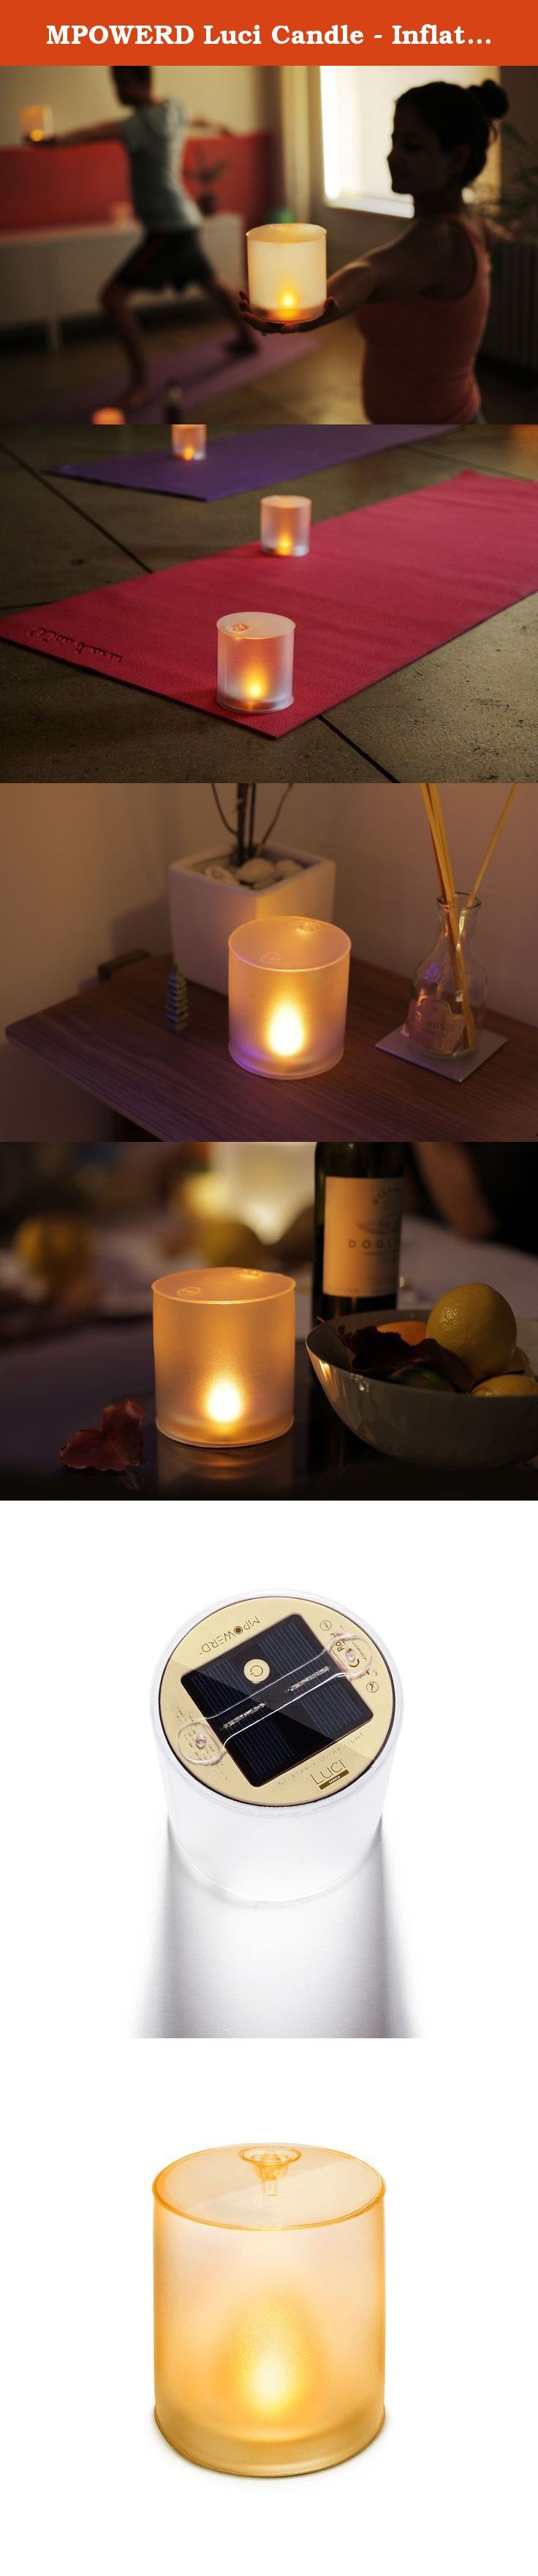 MPOWERD Luci Candle - Inflatable Solar Light. Turn your space into a soothing retreat with luci candle, our most Inviting light. With a frosted finish and comforting flameless flicker, luci candle adds a touch of Zen to your patio, yoga studio or dinner table. Because it's completely Solar and lasts for hours, luci gives you peace of mind where traditional candles can't. Safely enjoy the Light's warm Amber glow in the bath, bedroom or on a bookshelf - even around kids and pets.